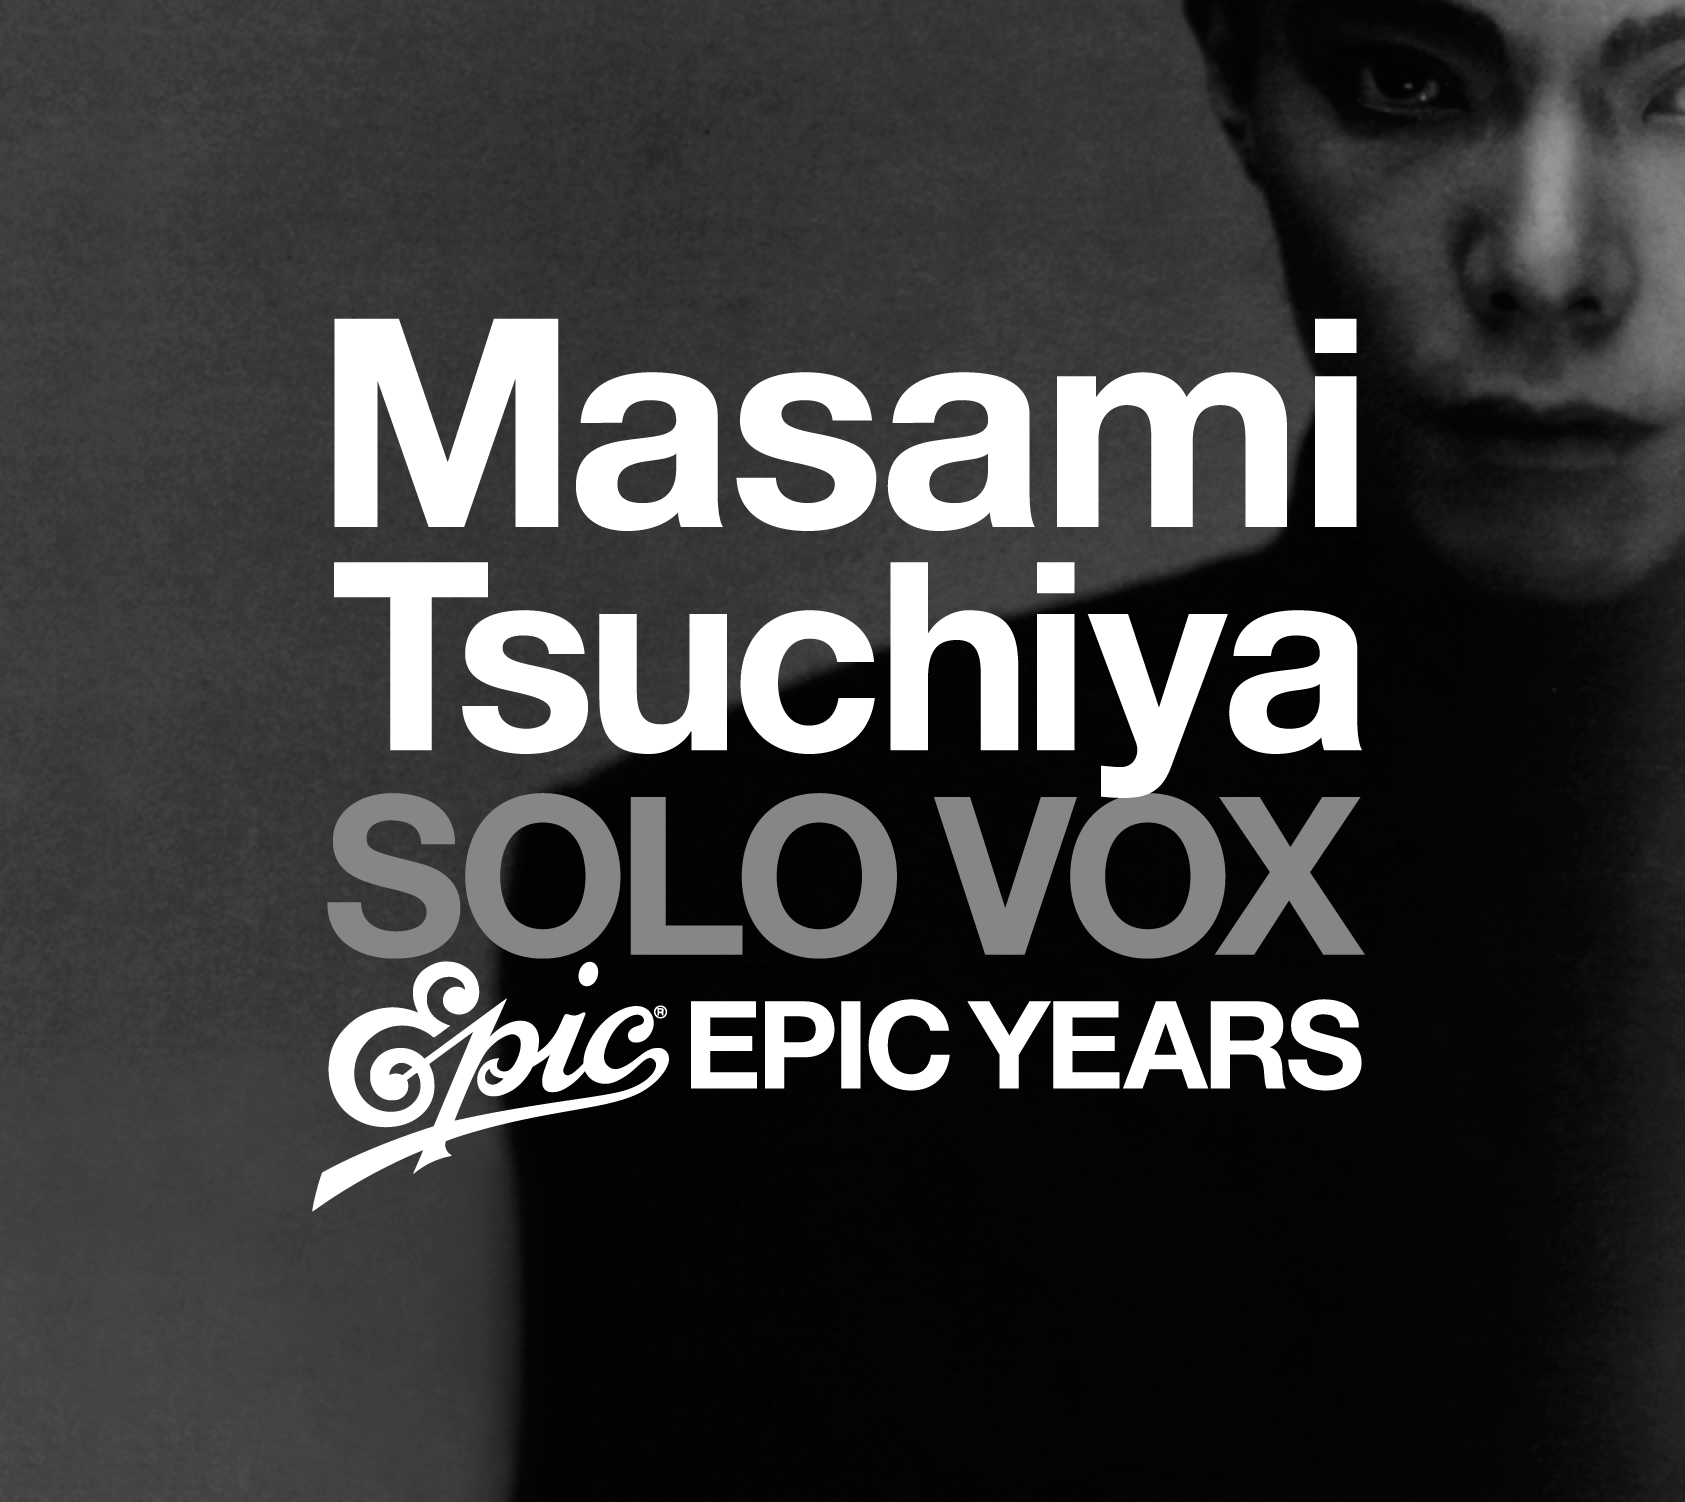 土屋昌巳 SOLO VOX -epic years-